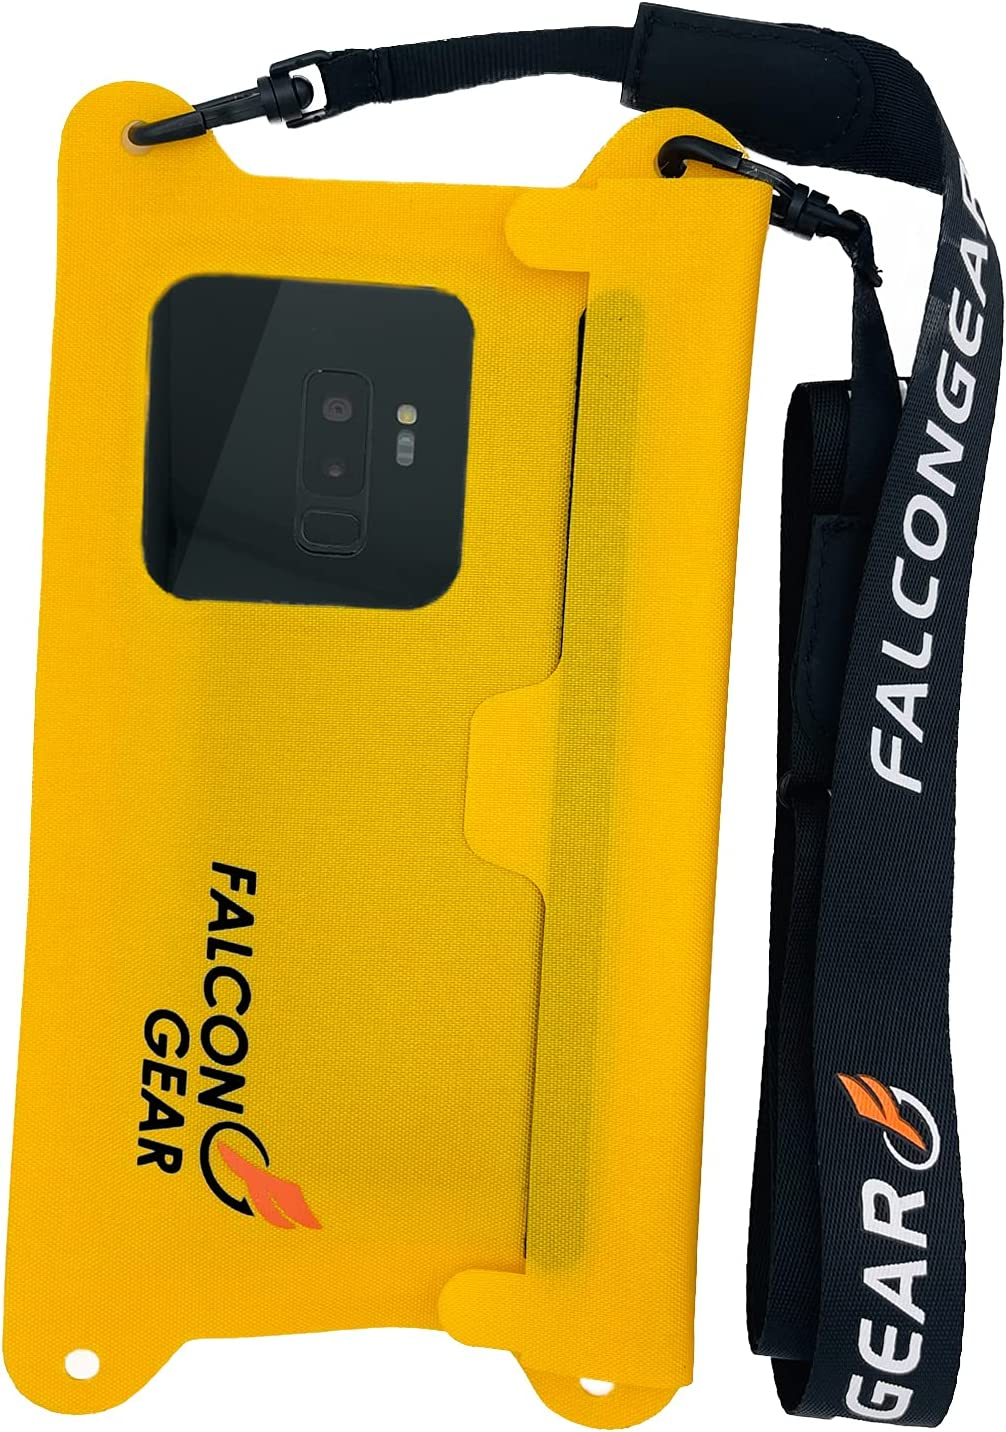 """FalconGear Waterproof Phone Pouch Universal Waterproof Phone Case with Adjustable Lanyard IPX8 Waterproof Phone Bag for iPhone 12/11 Pro Max XR Galaxy S21/20 Ultra & More Up to 7.5"""" (Yellow)"""